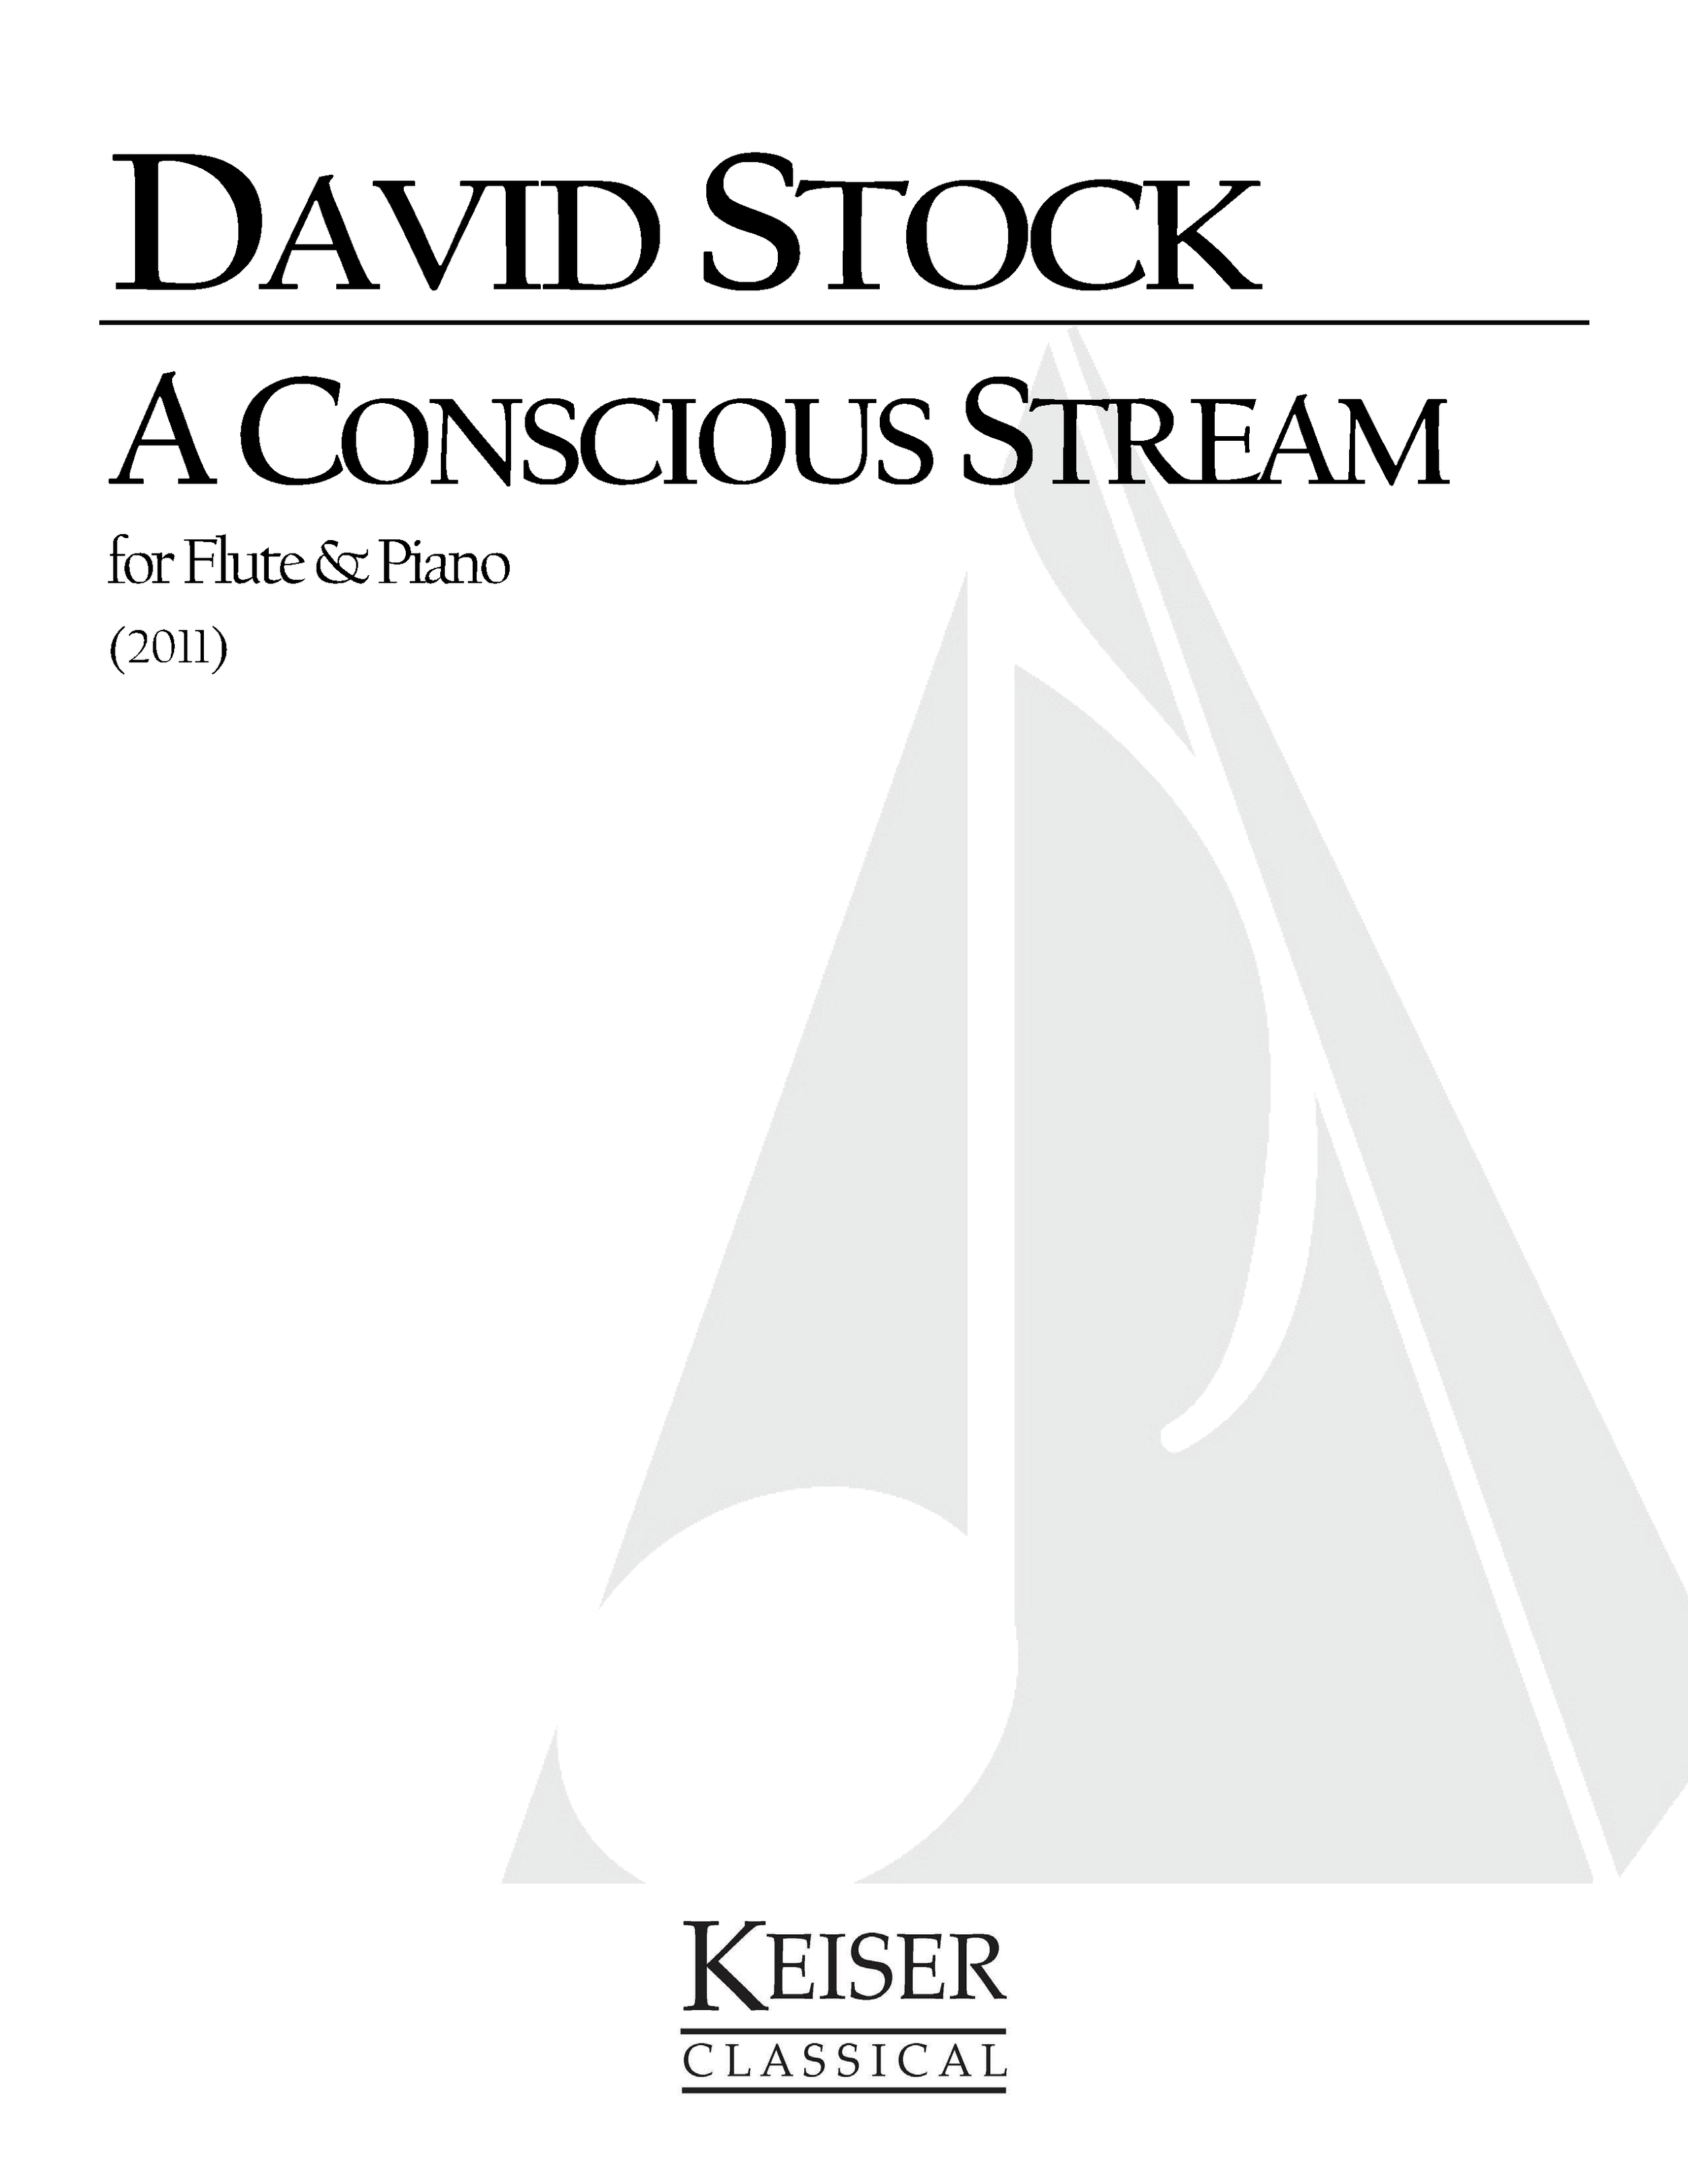 A Conscious Stream (2011) - Flute, PianoRent/Buy: Keiser MusicWATCH: World premiere performed by the Chrysalis DuoWATCH: Lindsey Goodman speaks about performing this work